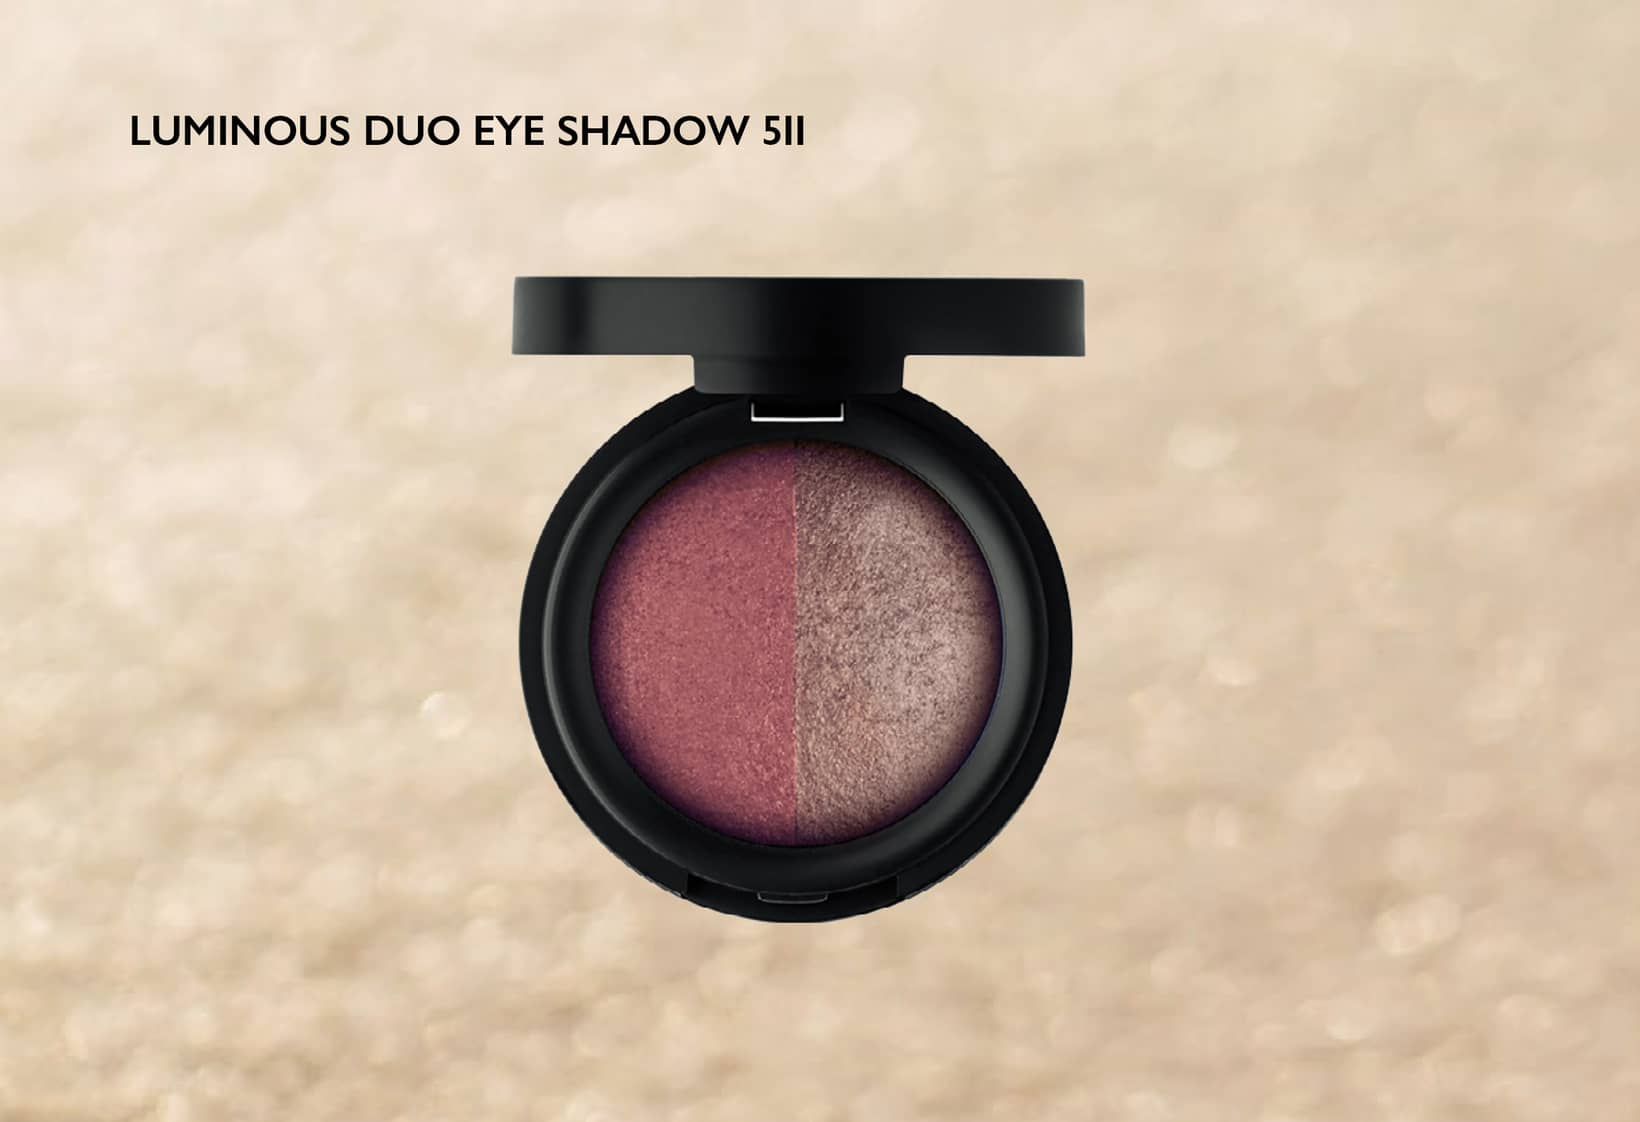 LUMINOUS DUO EYE SHADOW 511